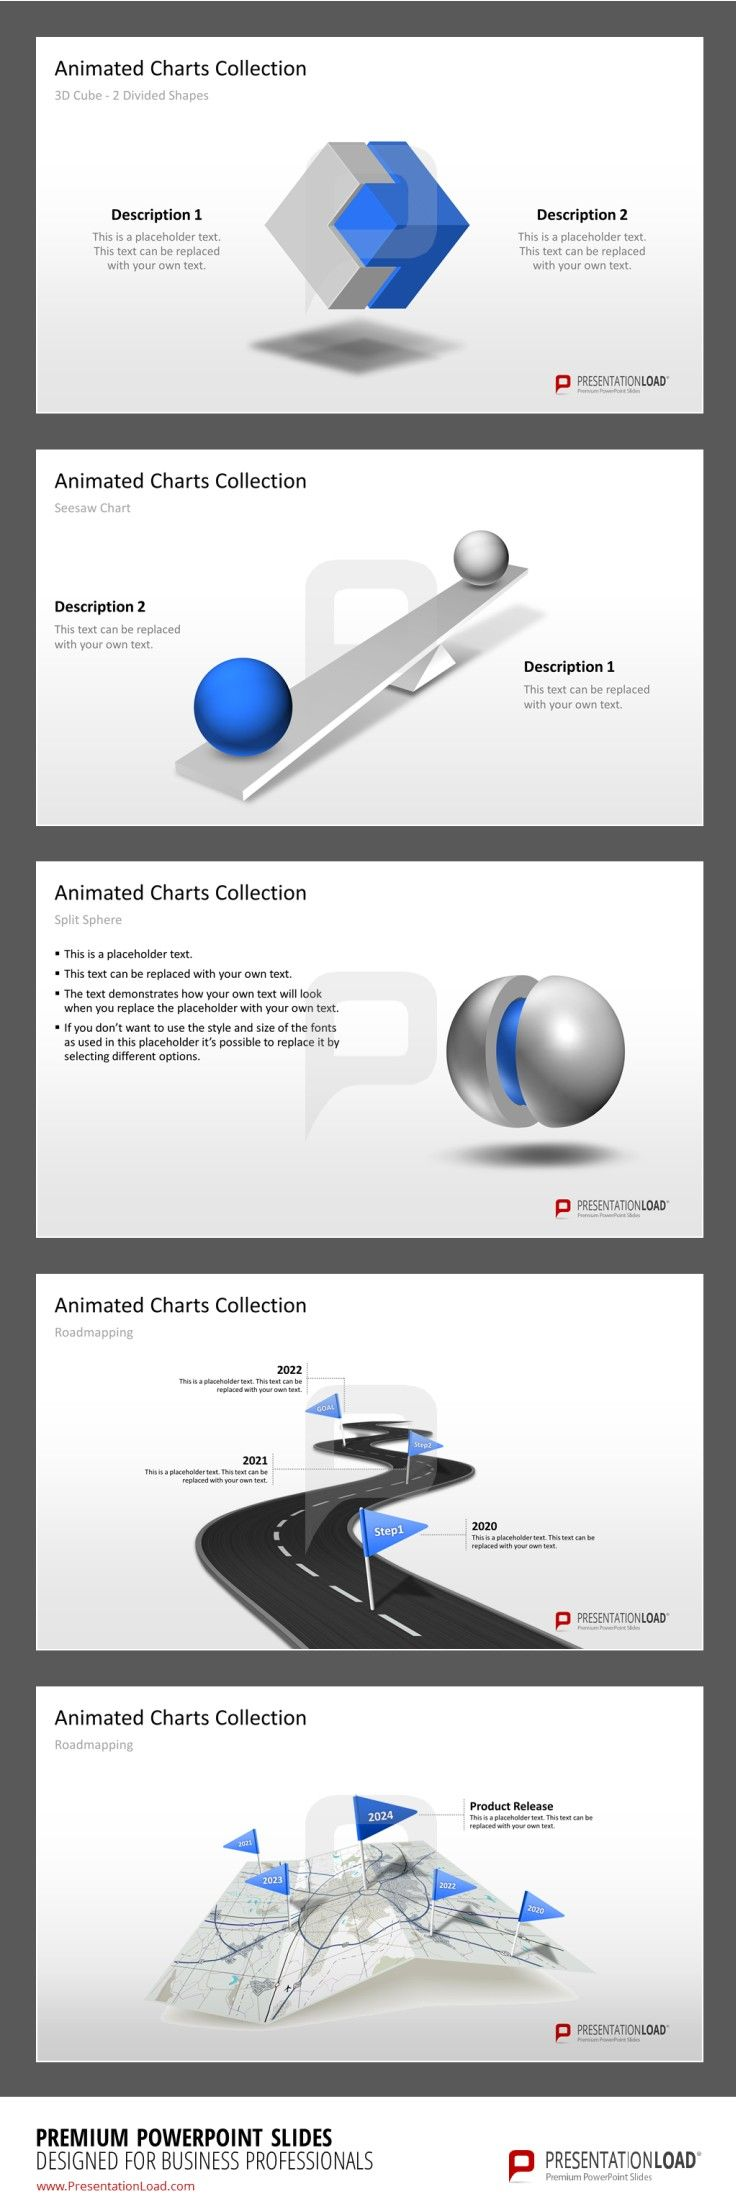 15 best animation powerpoint templates images on pinterest animated powerpoint templates the animated charts collection contains a variety of different animated objects you can toneelgroepblik Image collections